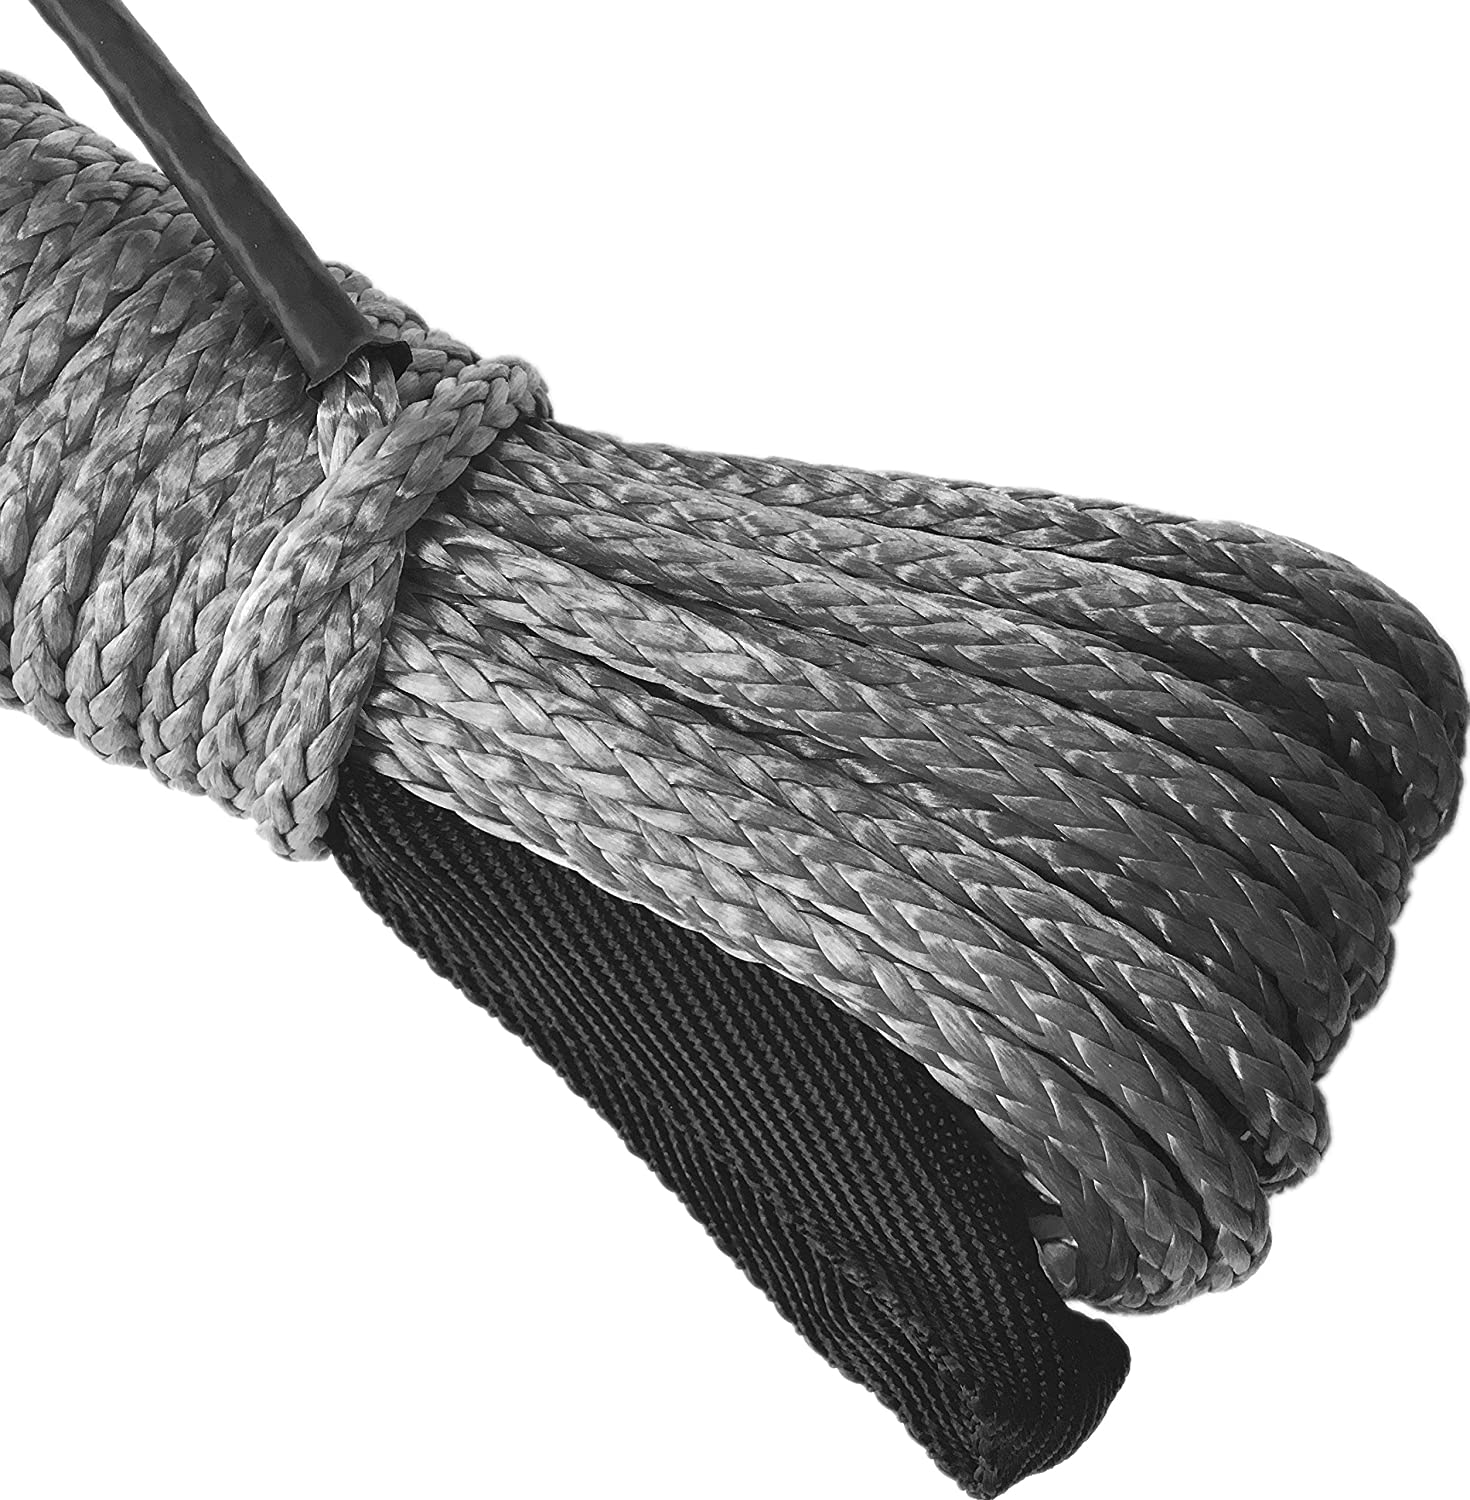 OFFROAD BOAR SK75 1//4 x 49/' Dyneema Synthetic Winch Rope for 4x4 SUV Truck (10000LBS)(Gray)